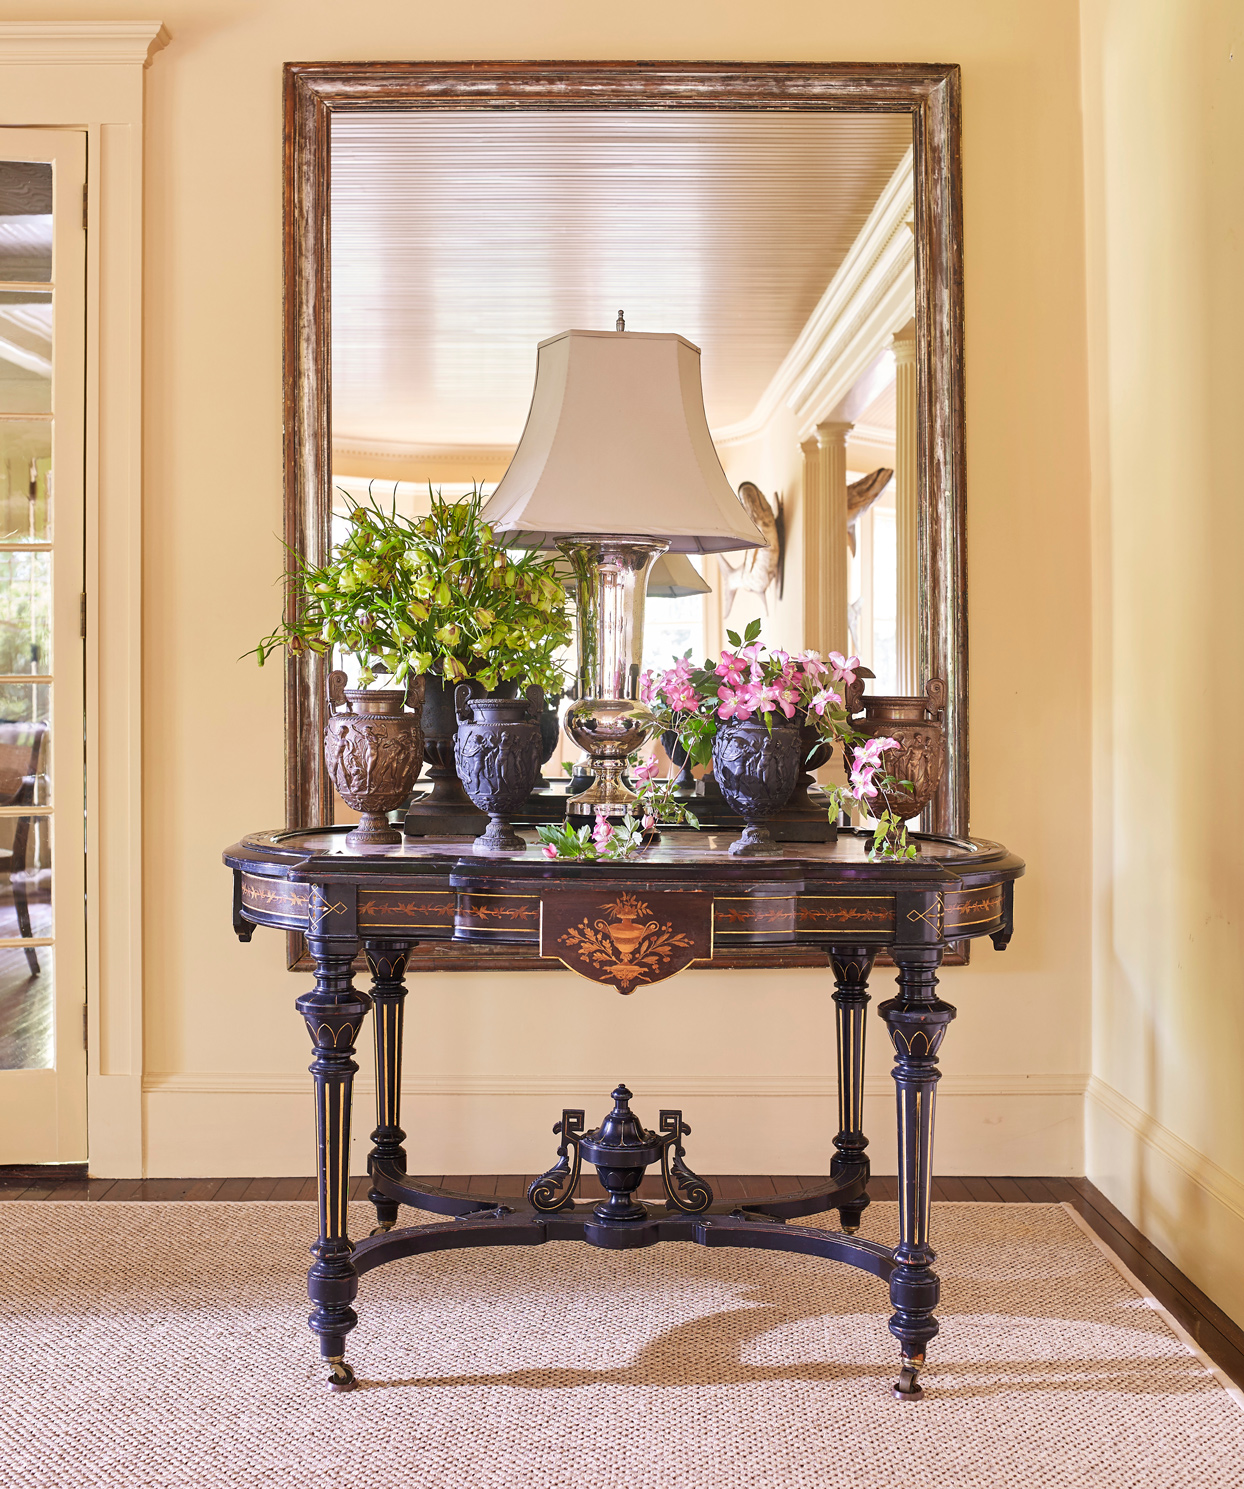 gilt-framed mirror hangs above aesthetic movement table with pink-marble top